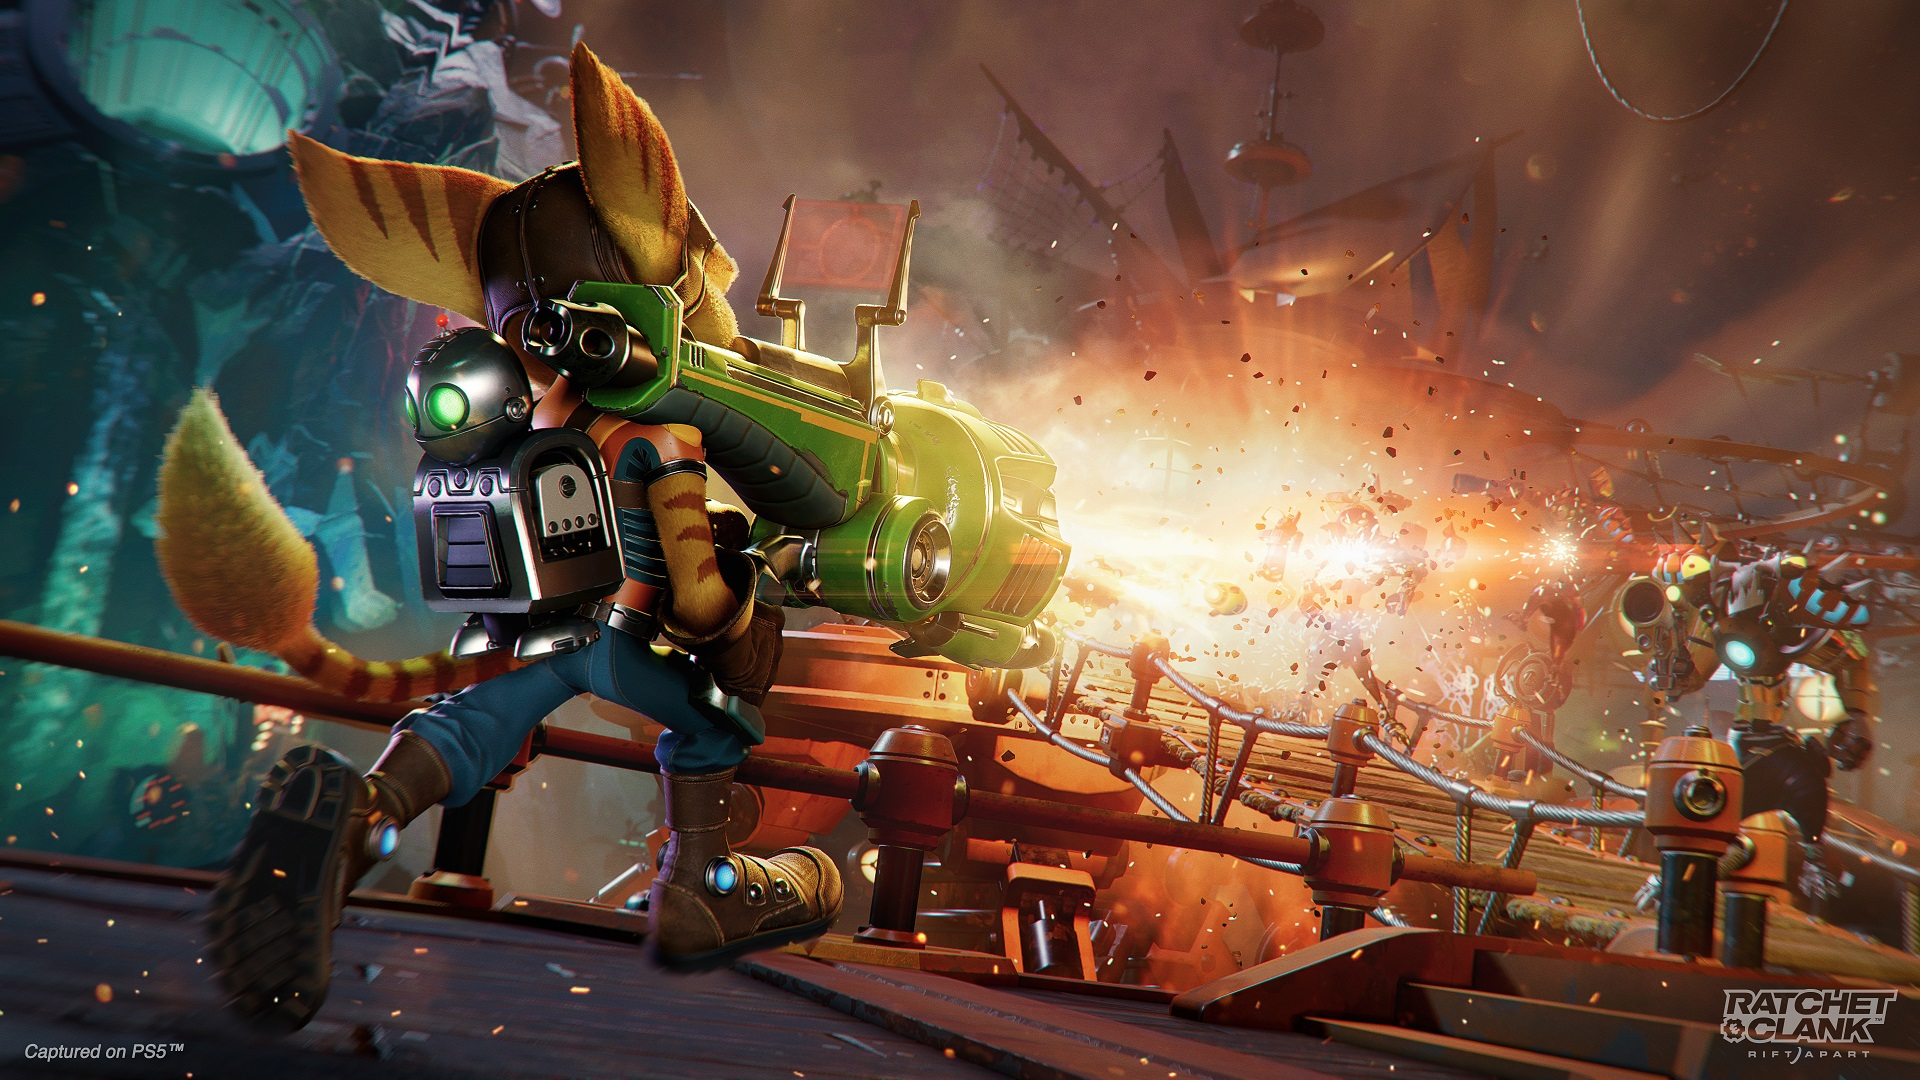 Cog as well as Clank: Break Apart is the 2nd Largest UK Introduce in Collection History thumbnail